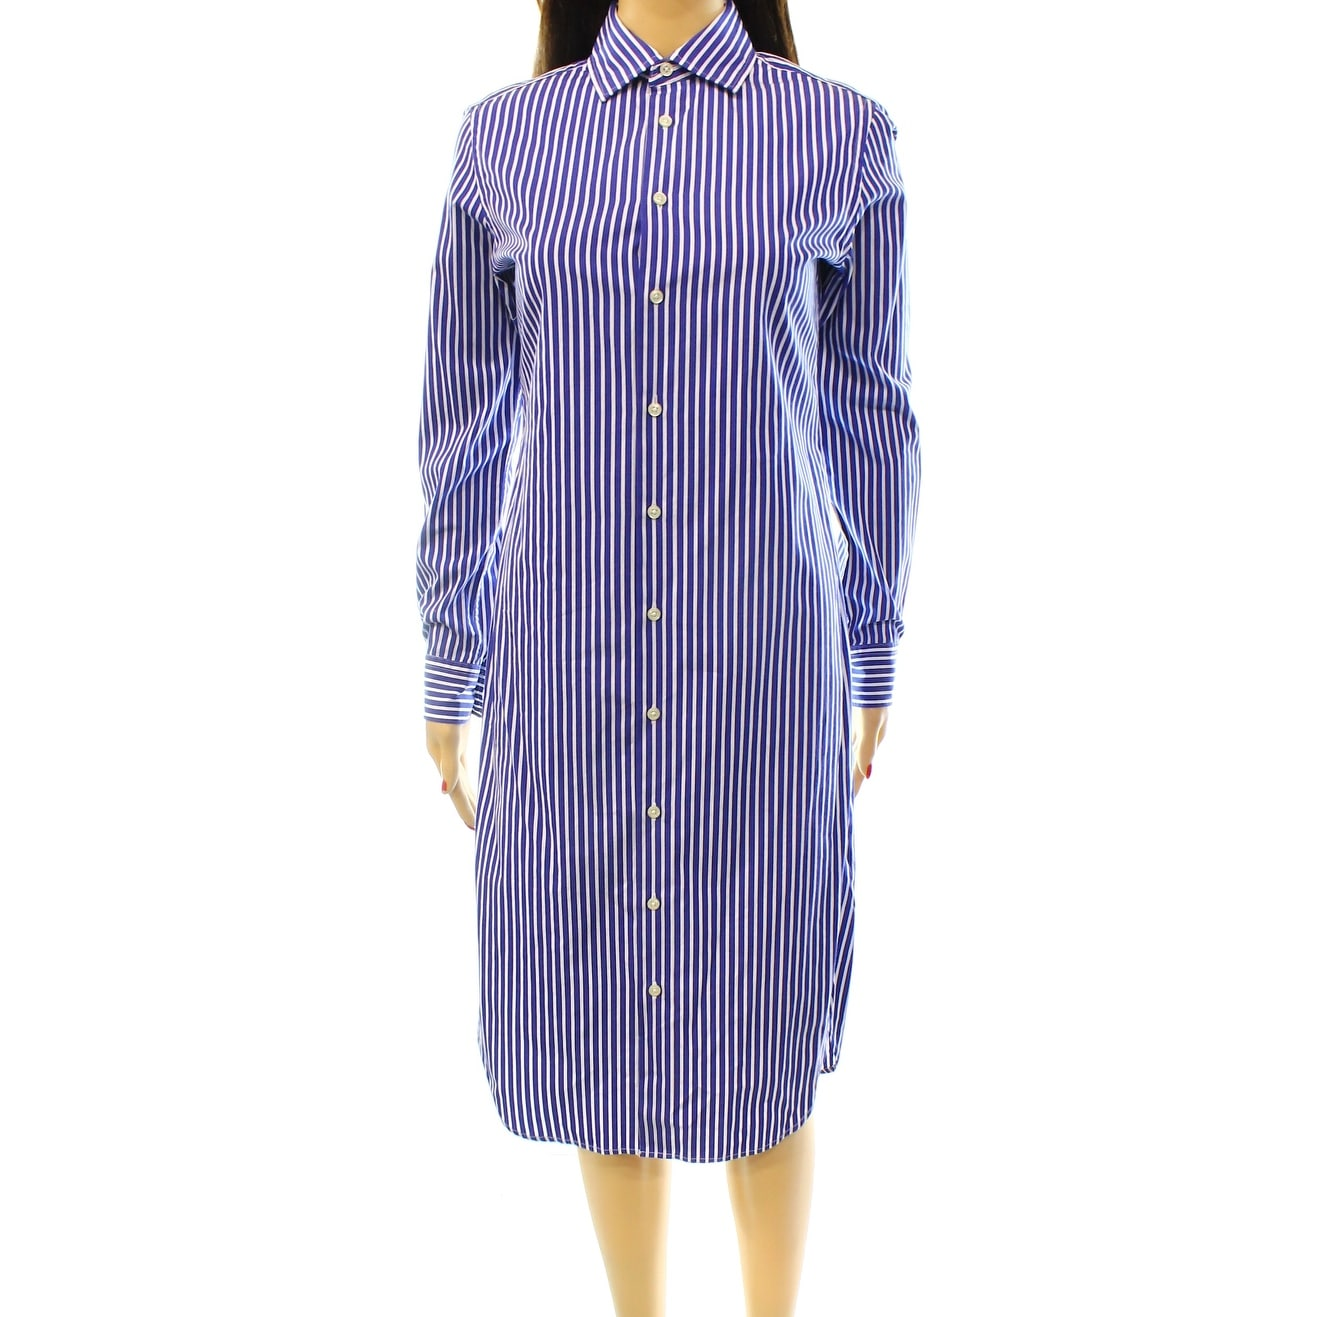 6afd41397fb Shop Polo Ralph Lauren NEW Blue Womens 12 Striped Long-Sleeve Shirt Dress -  Free Shipping Today - Overstock - 20032799